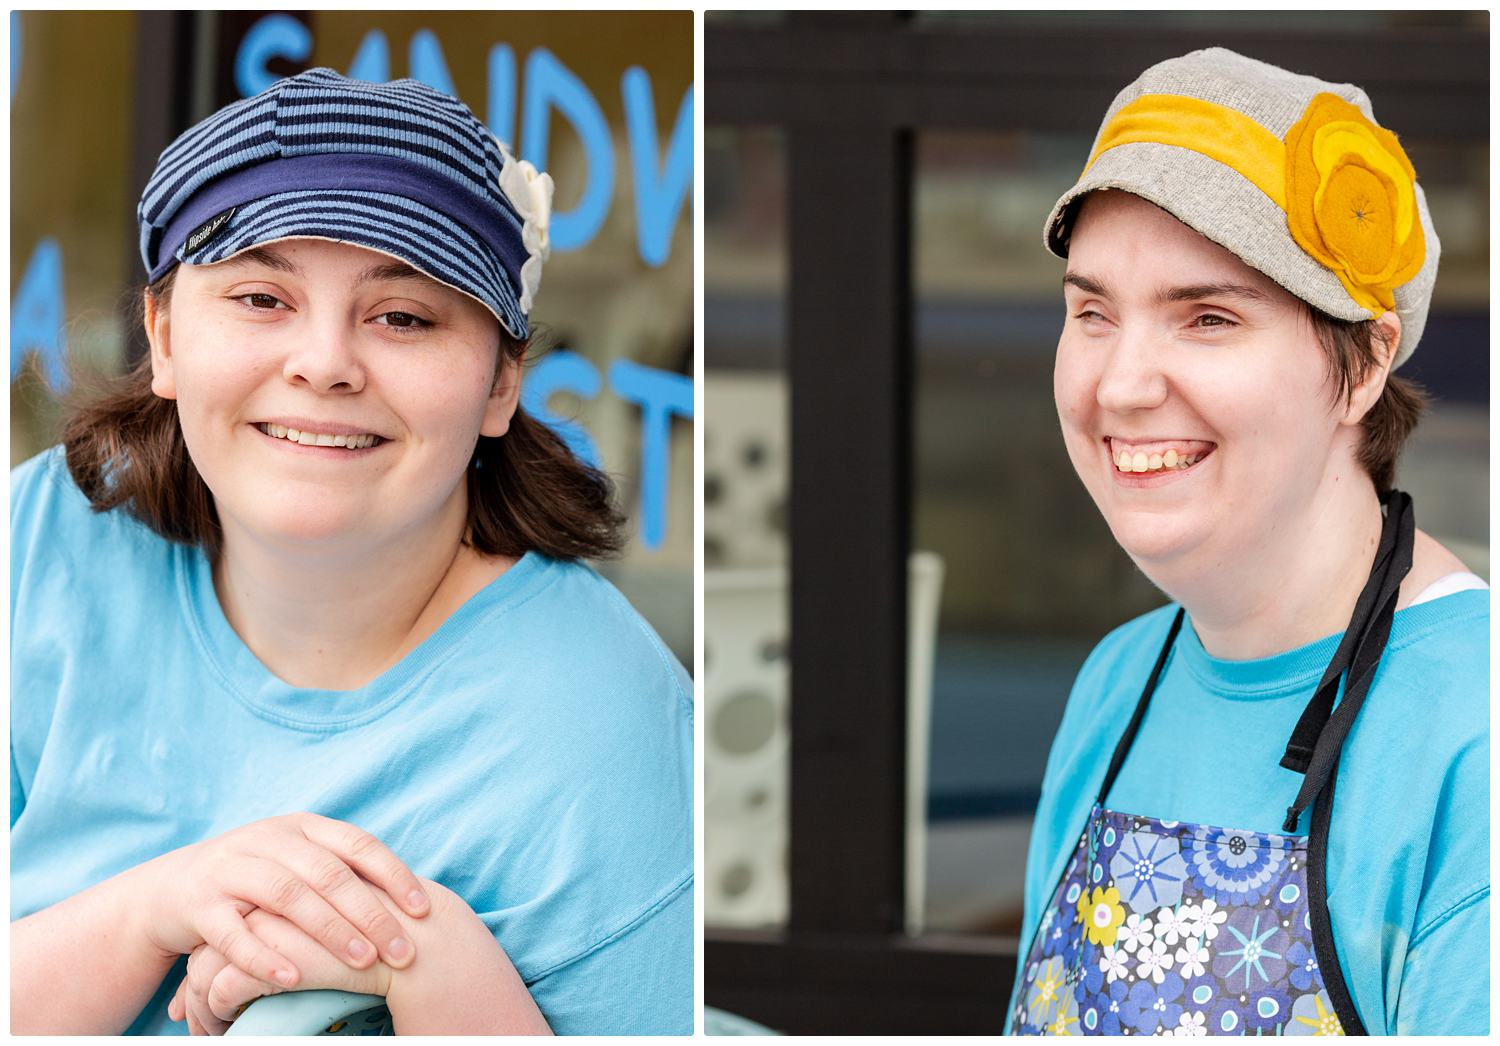 These ladies will bring a smile to your day! Stop in and say hello to Alexis and Jenny!